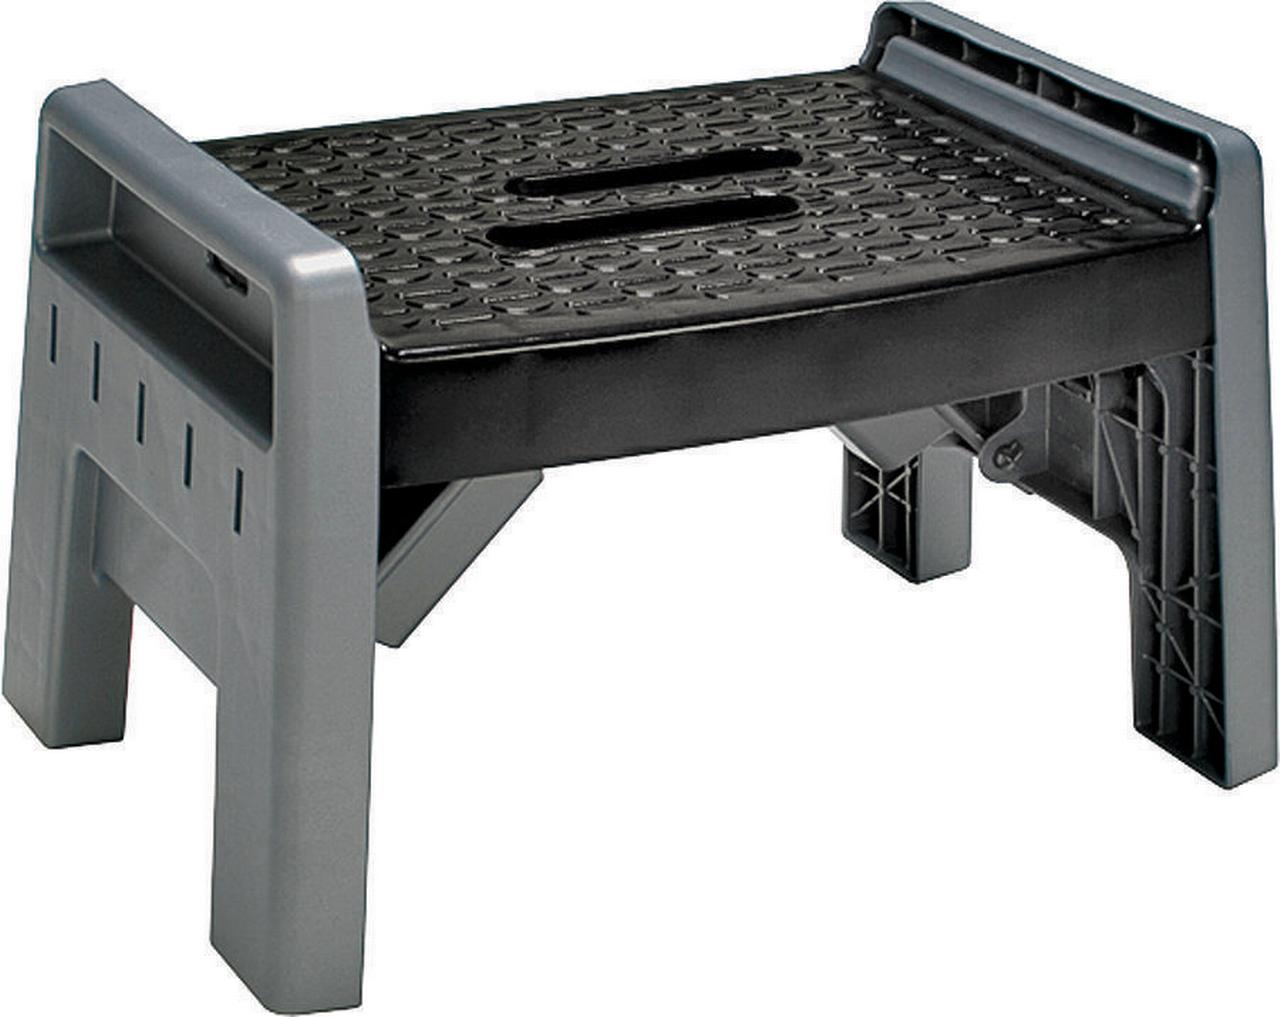 Cosco 11-905-PBL4 1-Step Folding Step Stool 3.38 in H  sc 1 st  Walmart : black plastic step stool - islam-shia.org